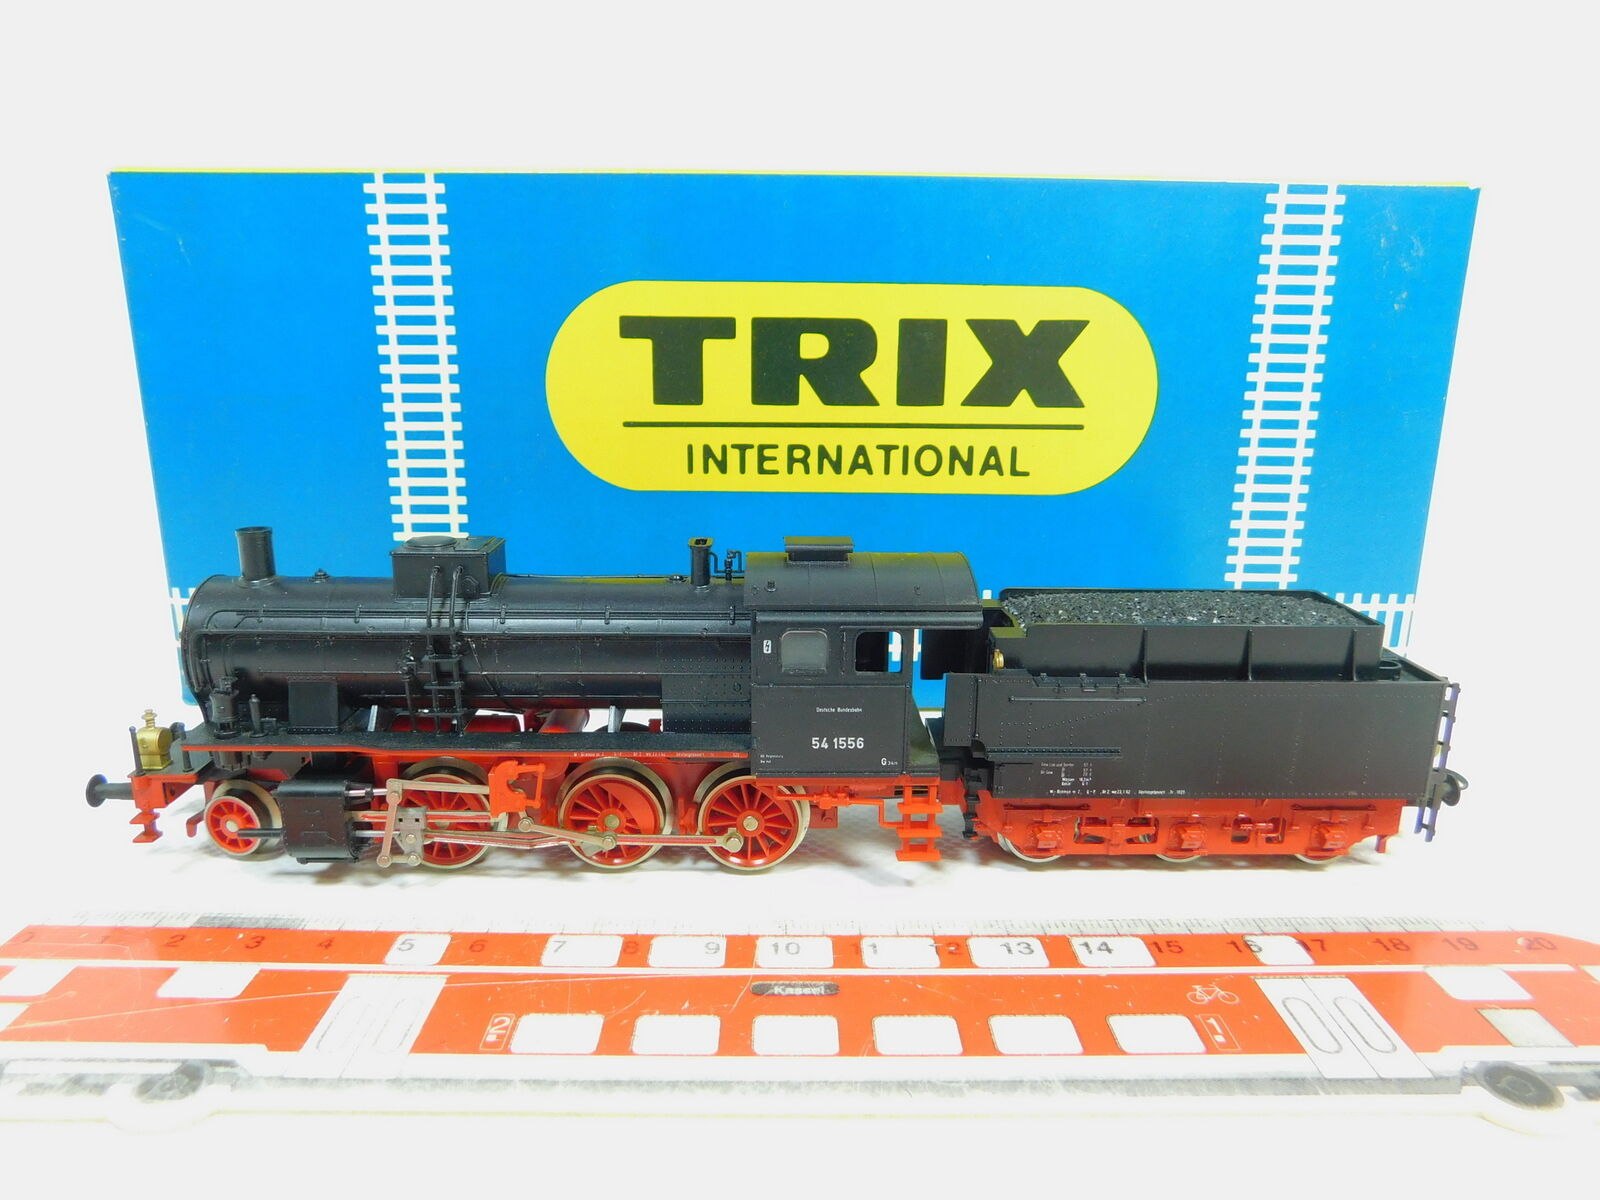 Bo183-1 trix international h0 dc 52 2425 00 steam locomotive 54 1556 db,